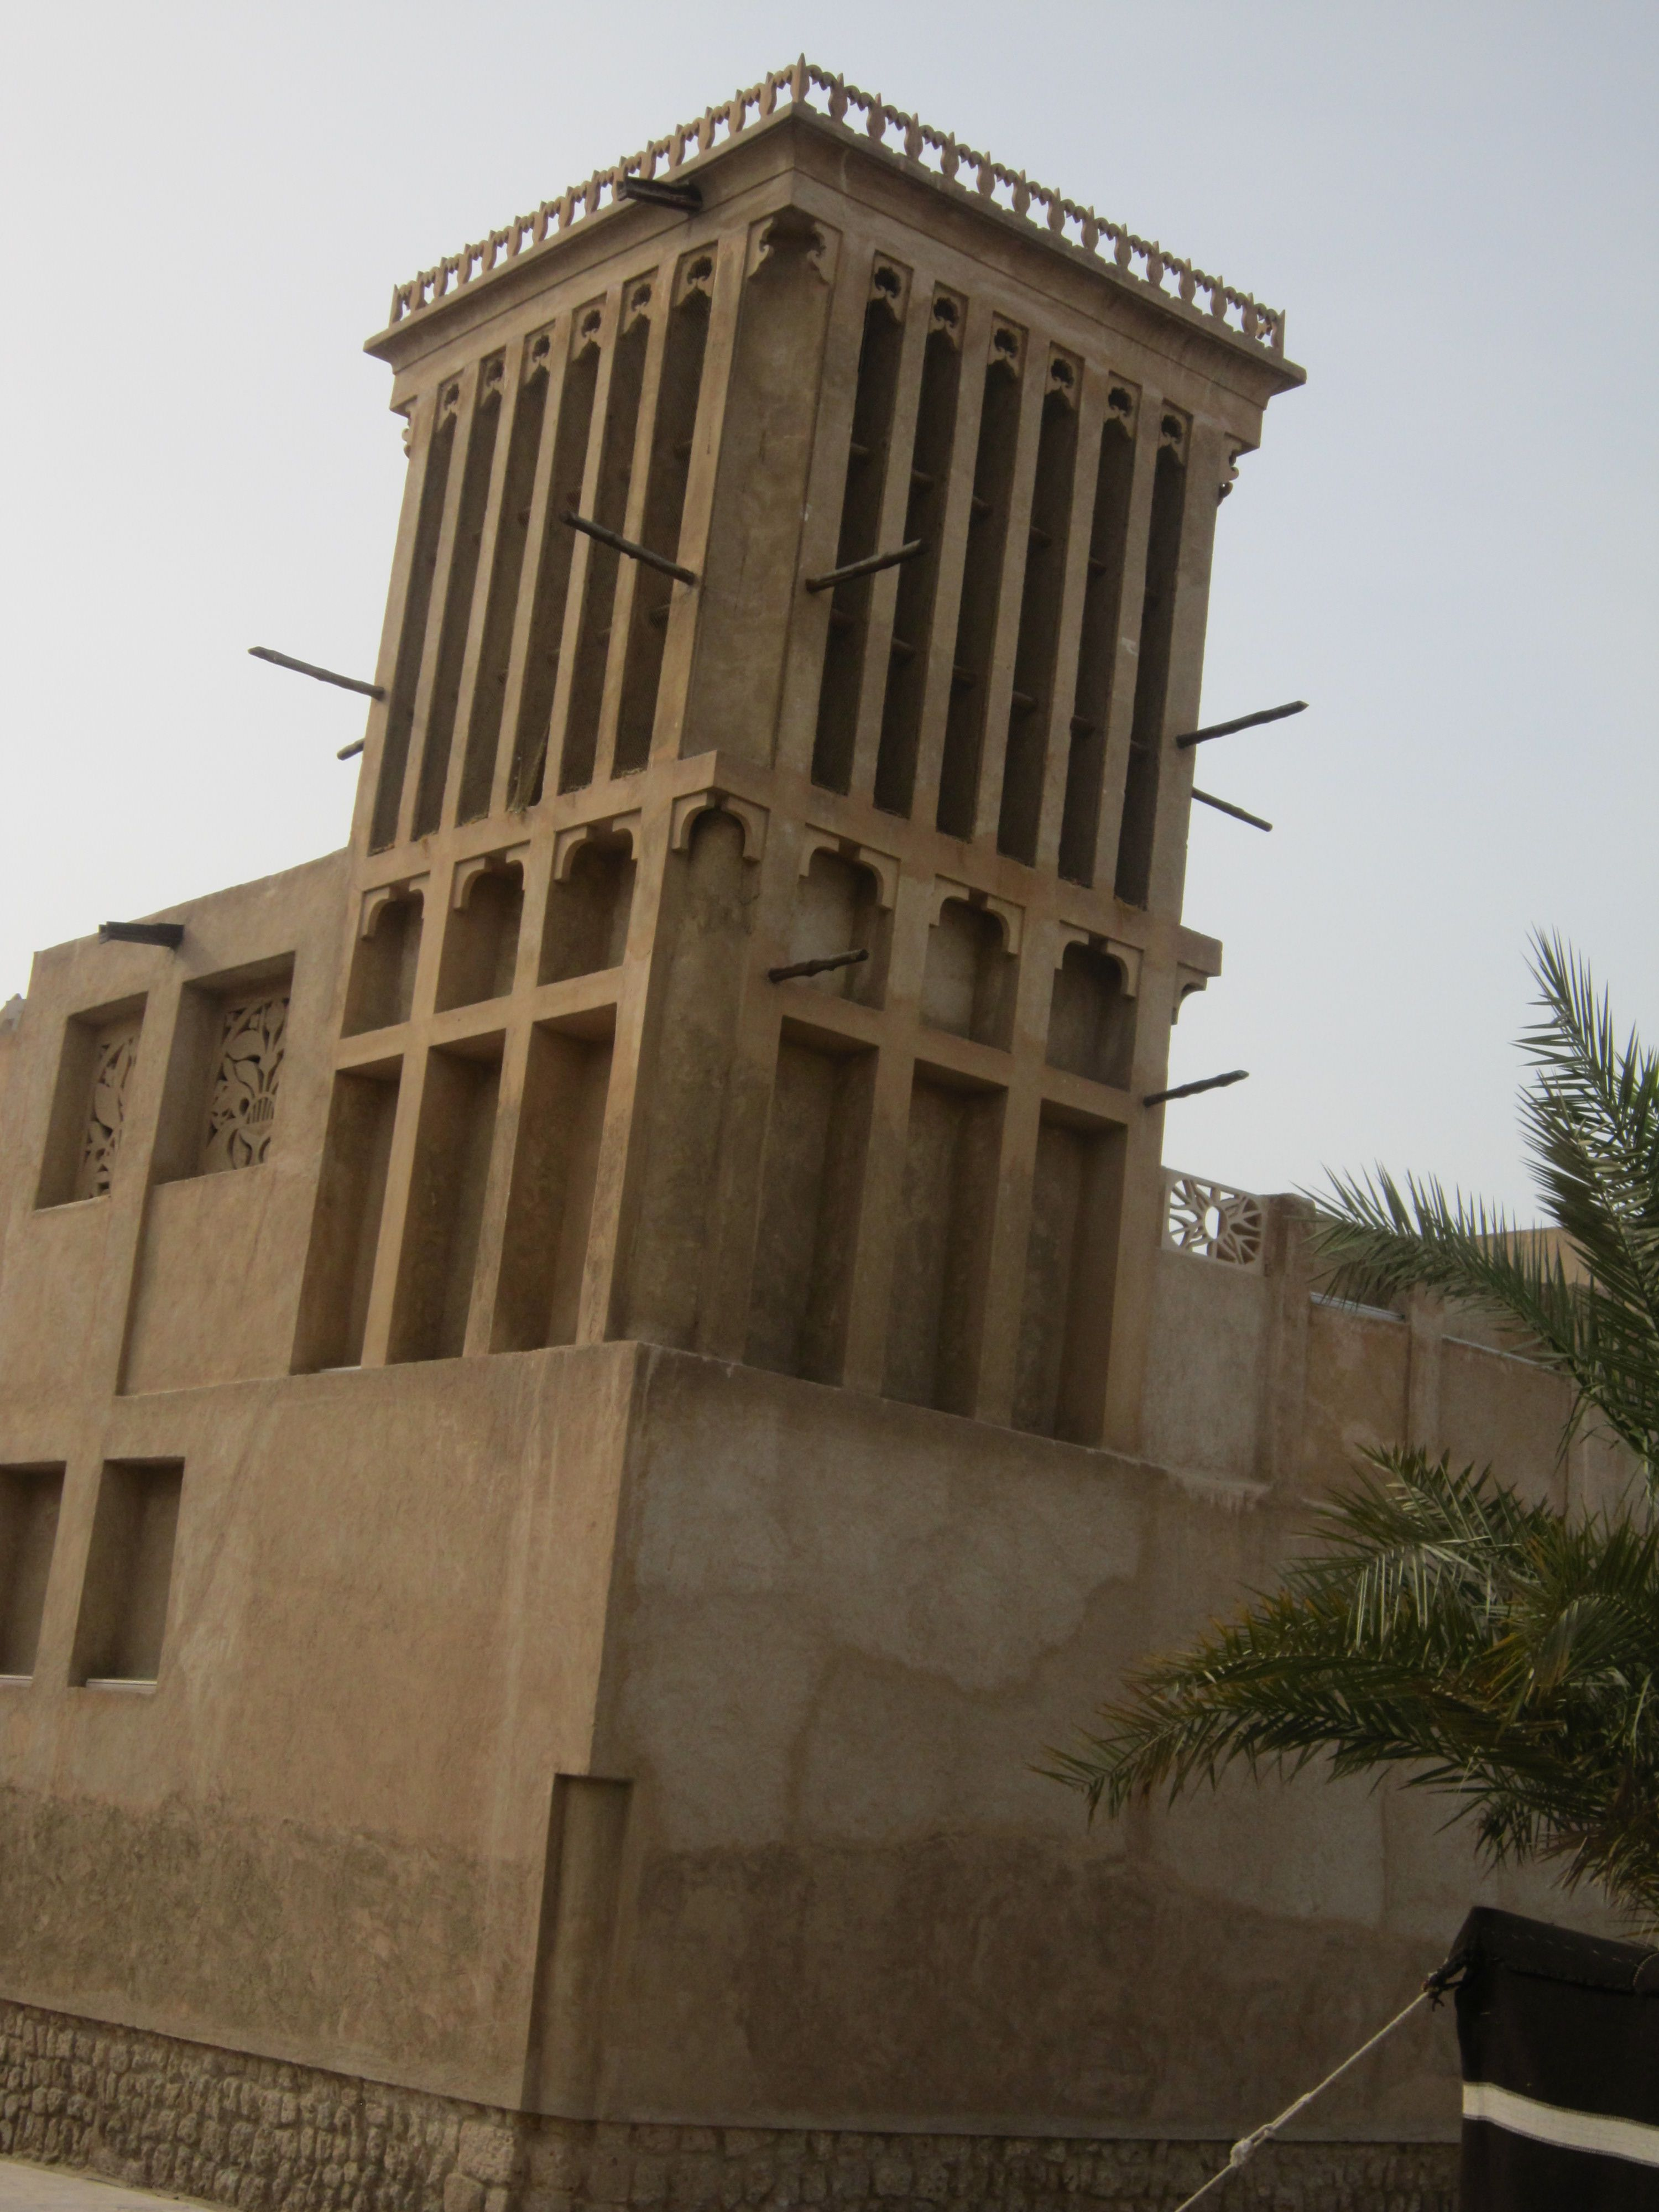 Al Barjeel Used As An Air Conditioner In The Houses Uae